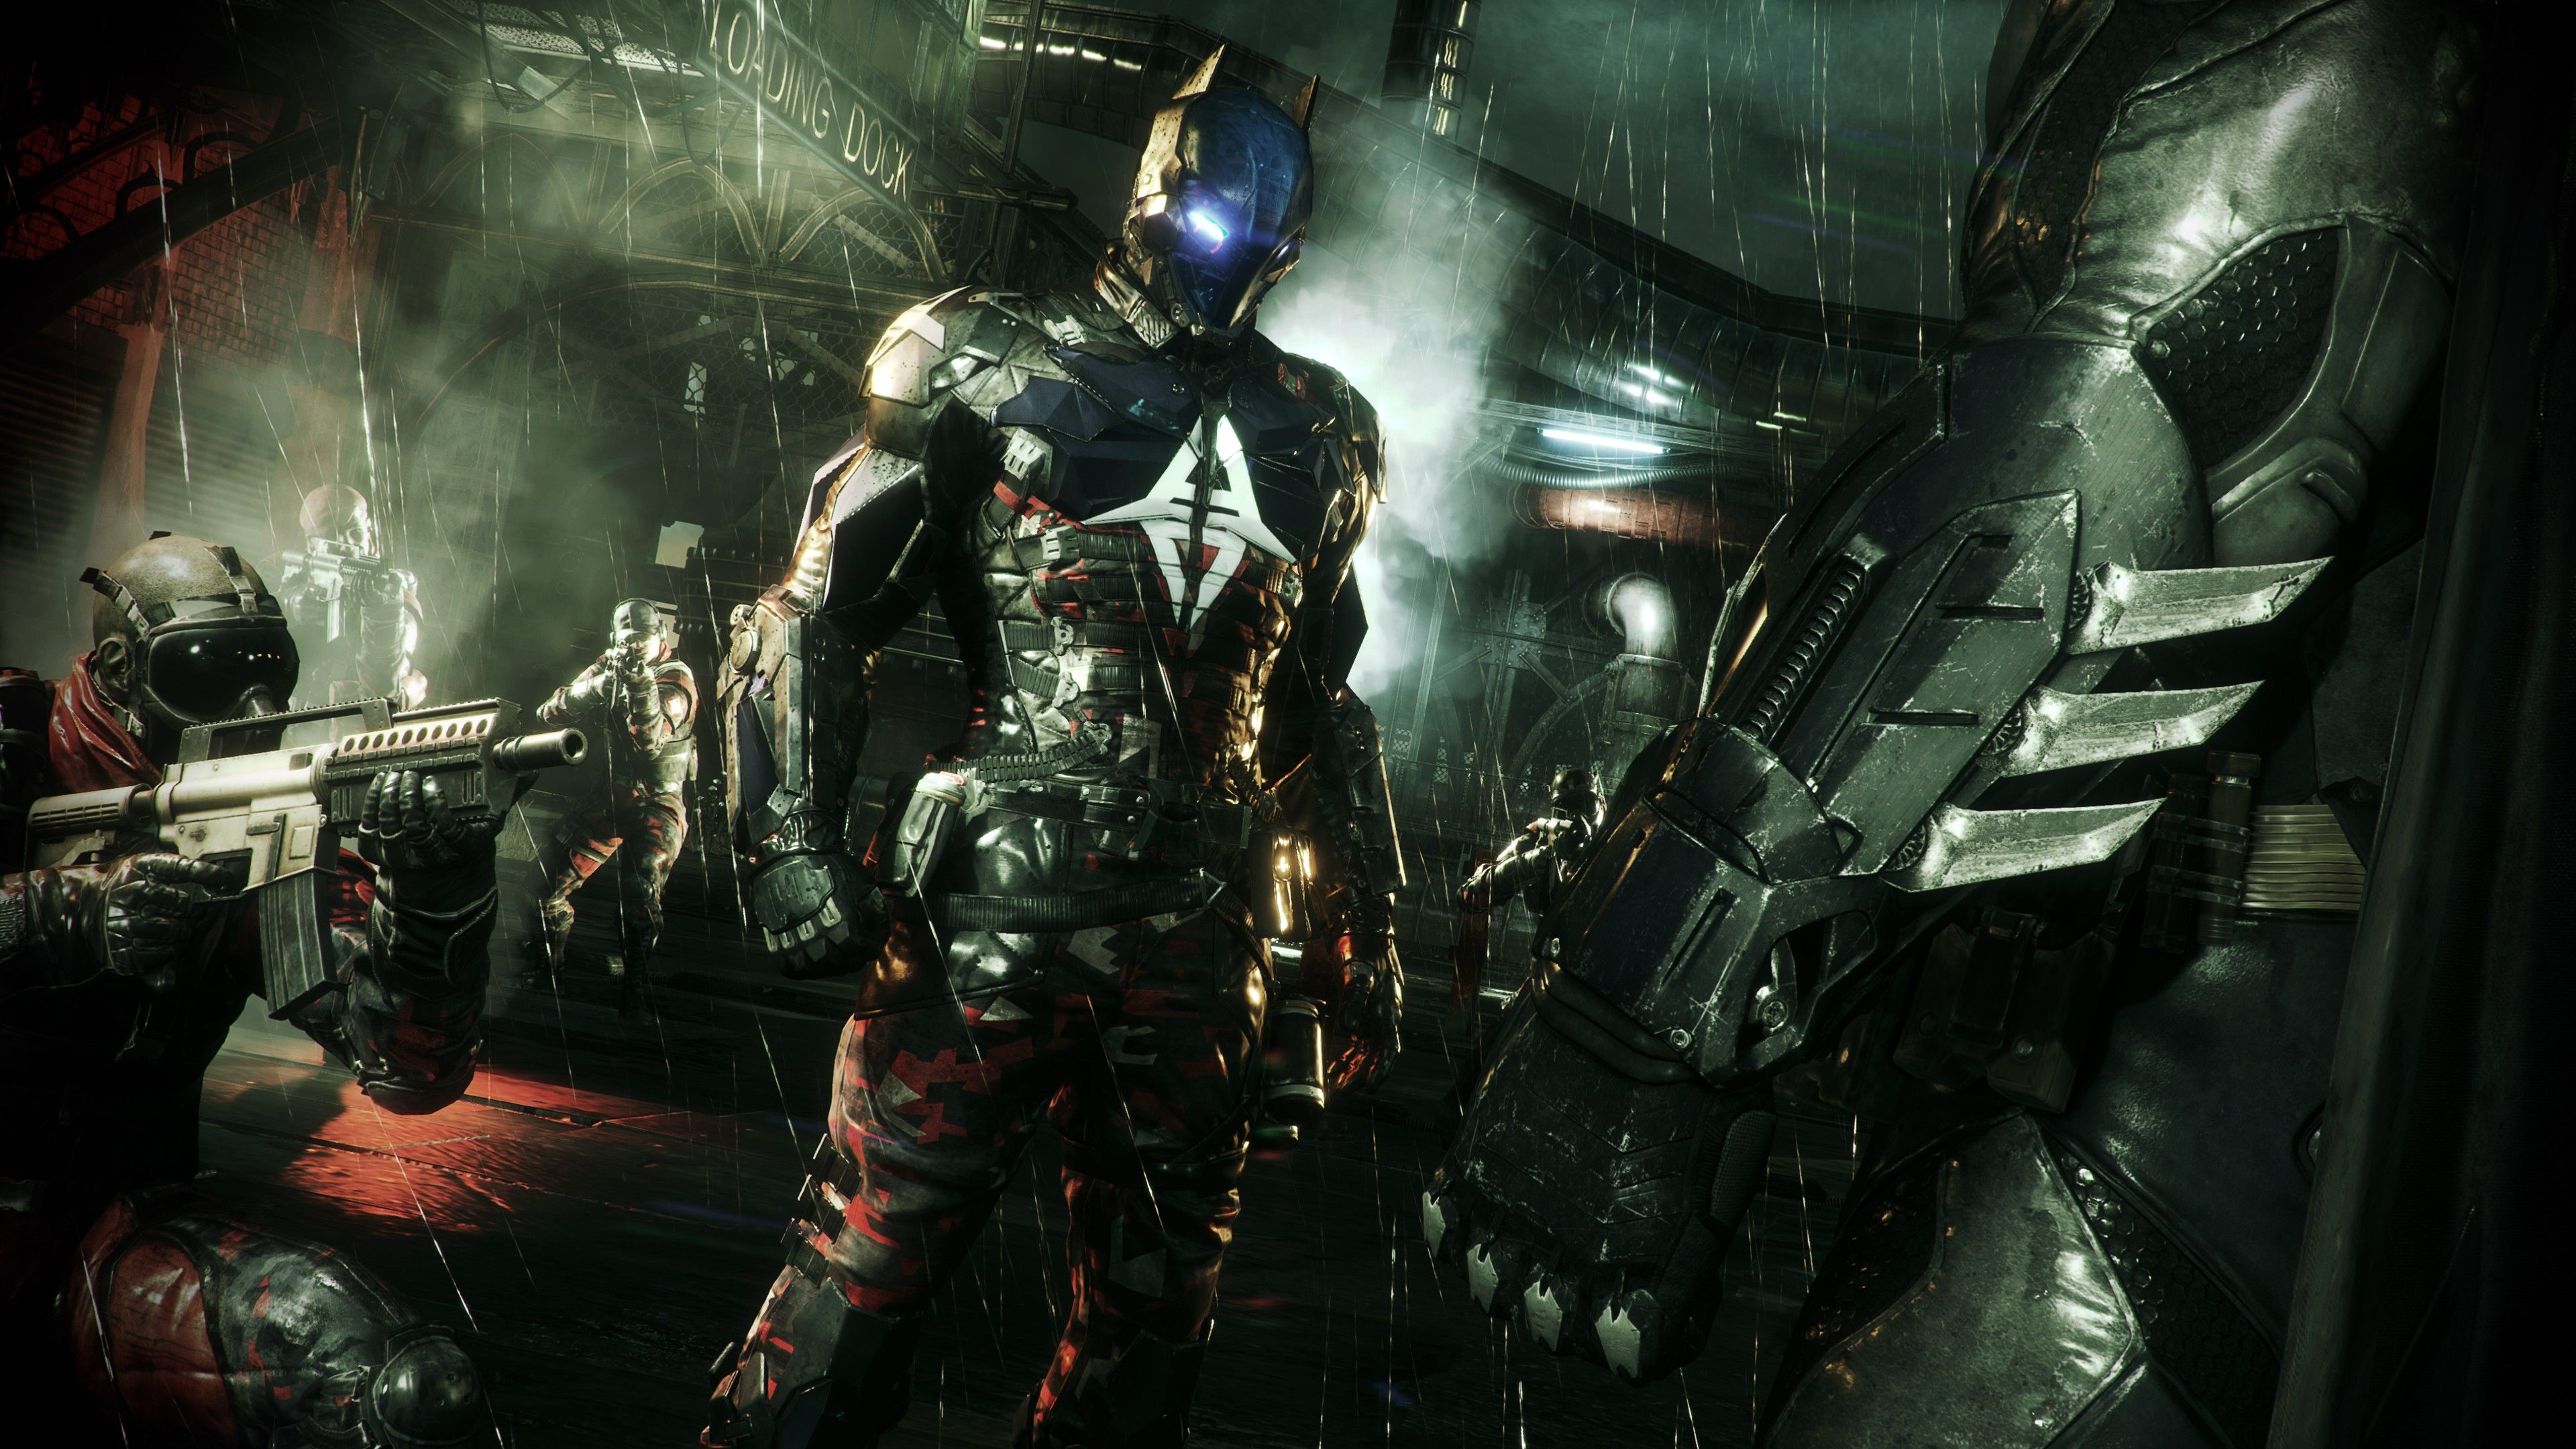 Batman Arkham Knight Cool Backgrounds 780 - HD Wallpaper Site